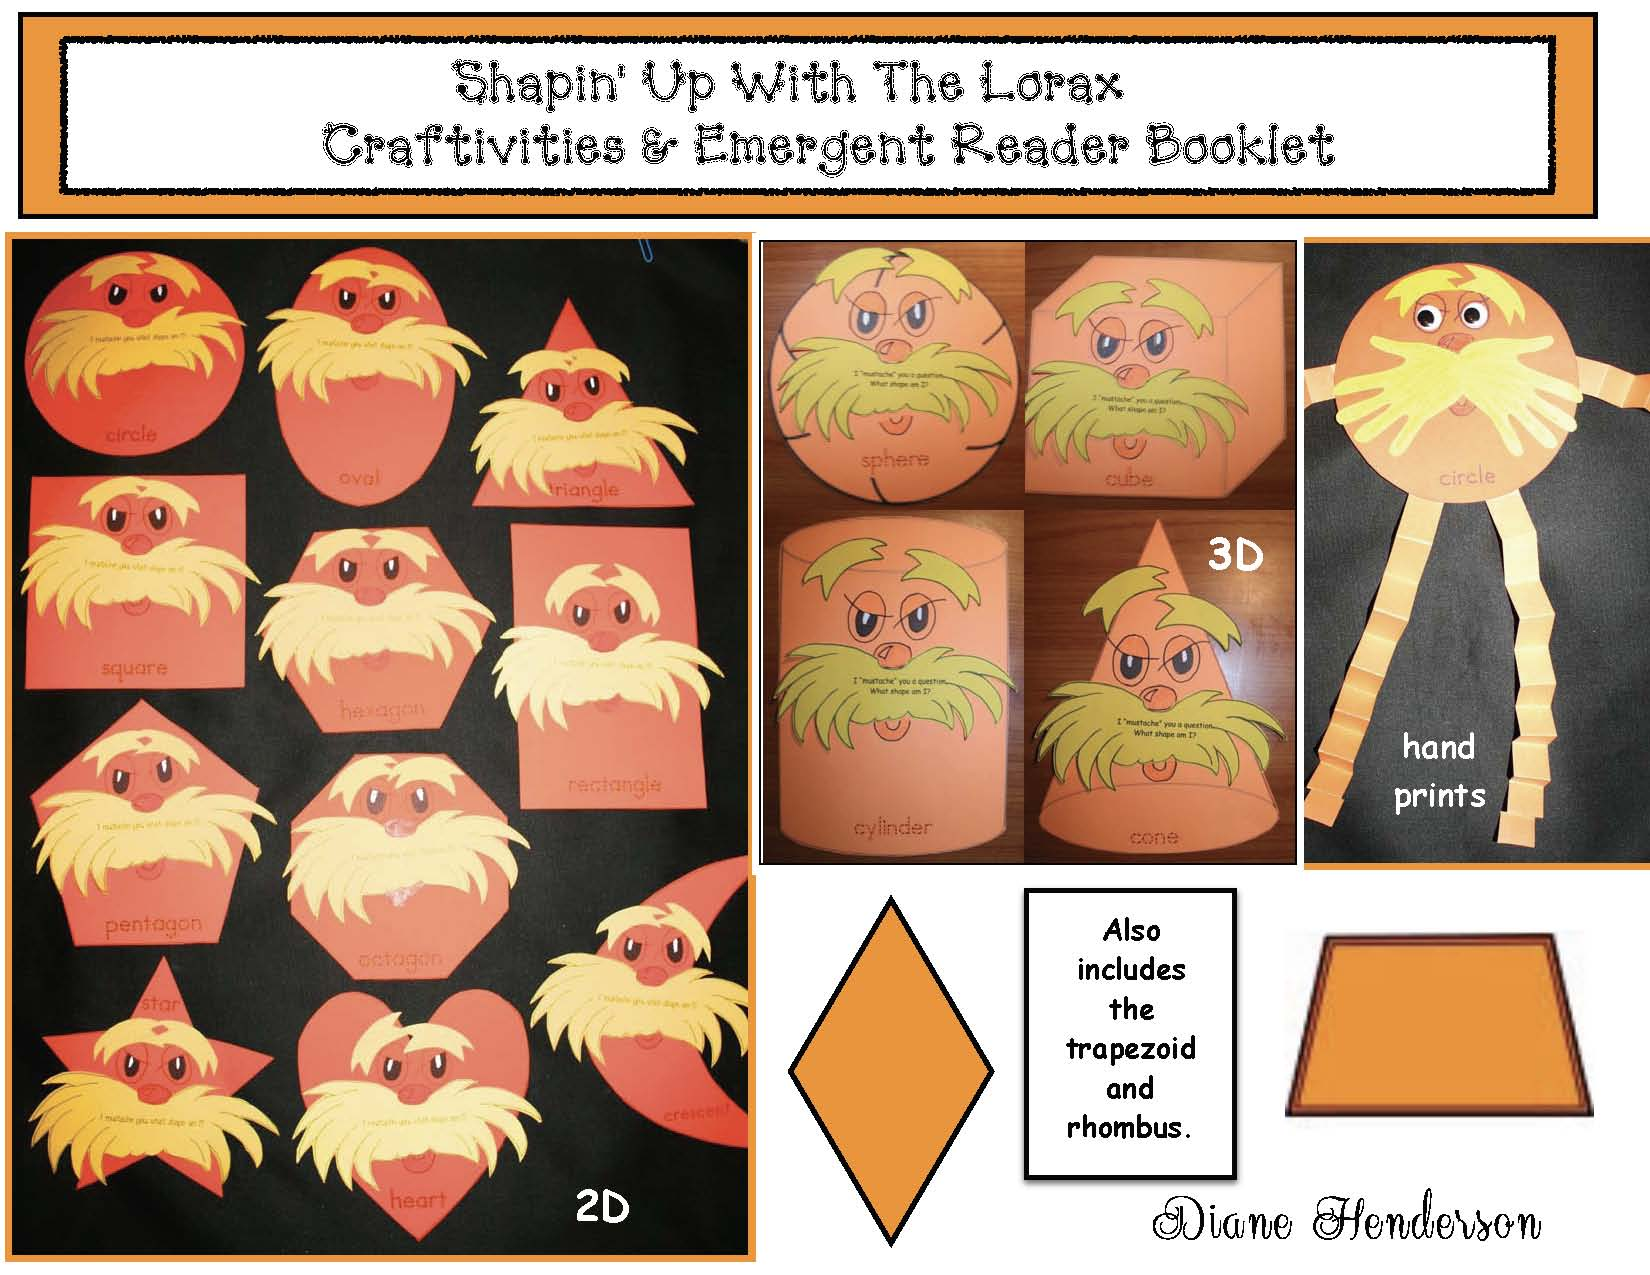 2D shape crafts, 2D shape activities, 2D shape puzzles, Dr. Seuss activities, Lorax activities, Seuss crafts, Lorax crafts, 3D shape activities, 3D shape crafts, 3D shape puzzles, 2D shape centers, 3D shape centers, 2D shape games, 3D shape games